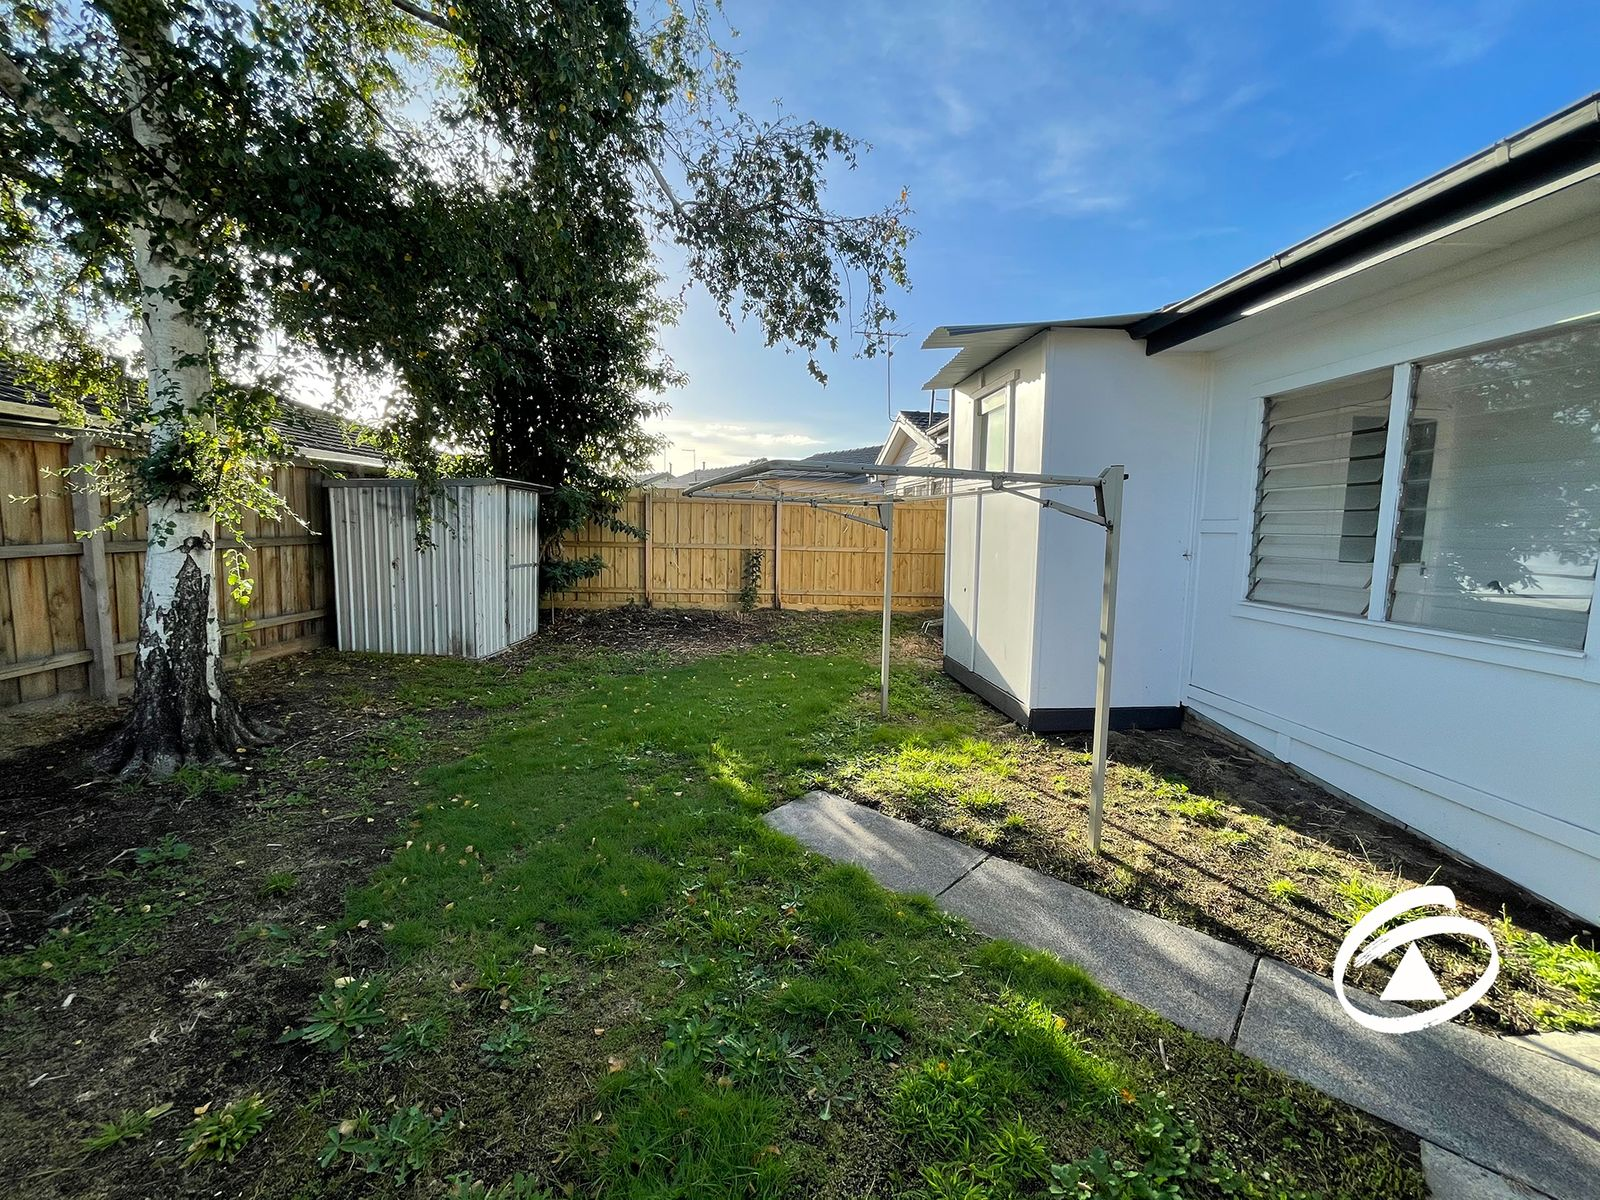 2 Dame Pattie Avenue, Pakenham, VIC 3810